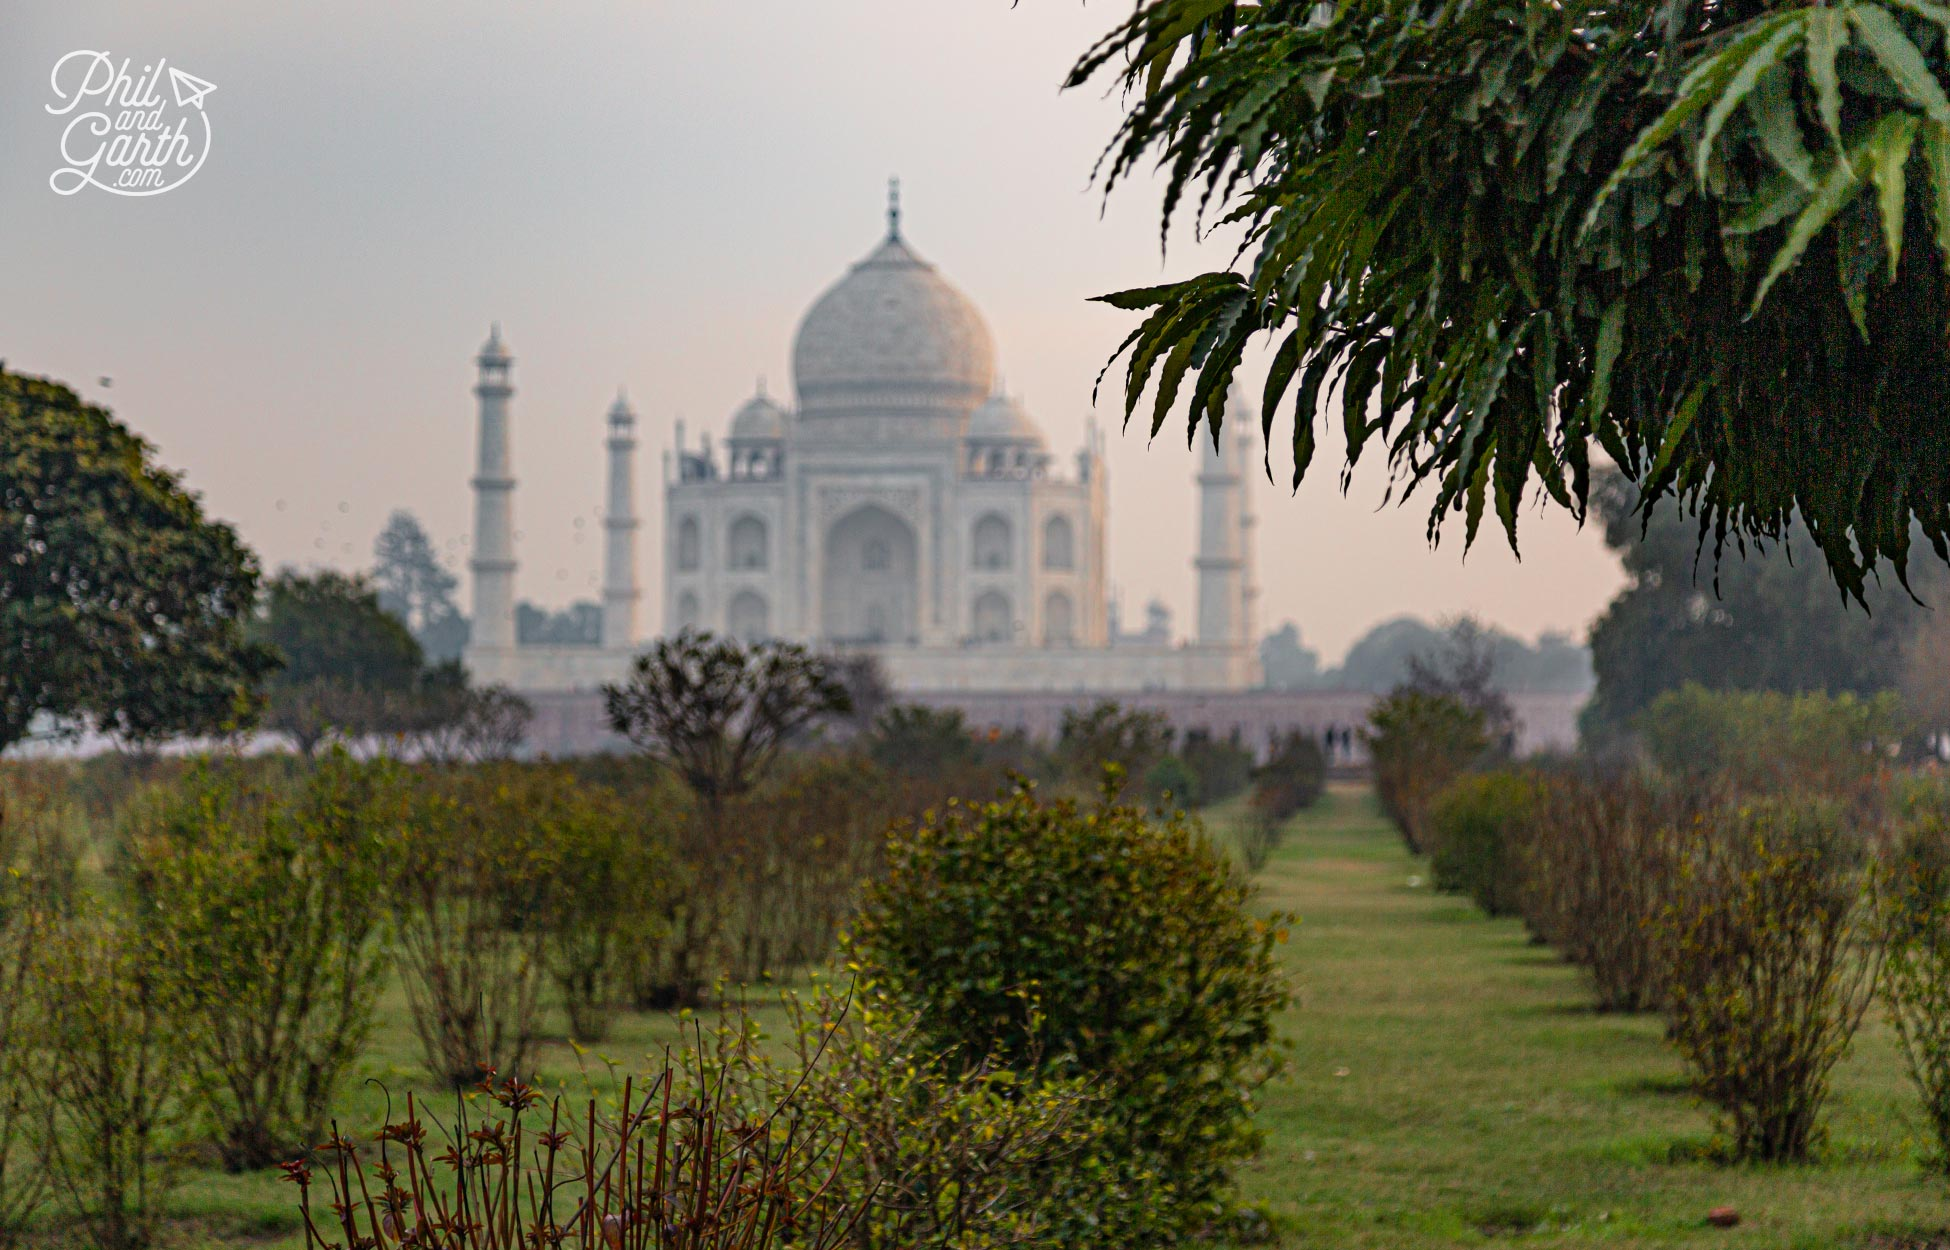 Our first glimpse of the Taj Mahal from the Mehtab Bagh garden